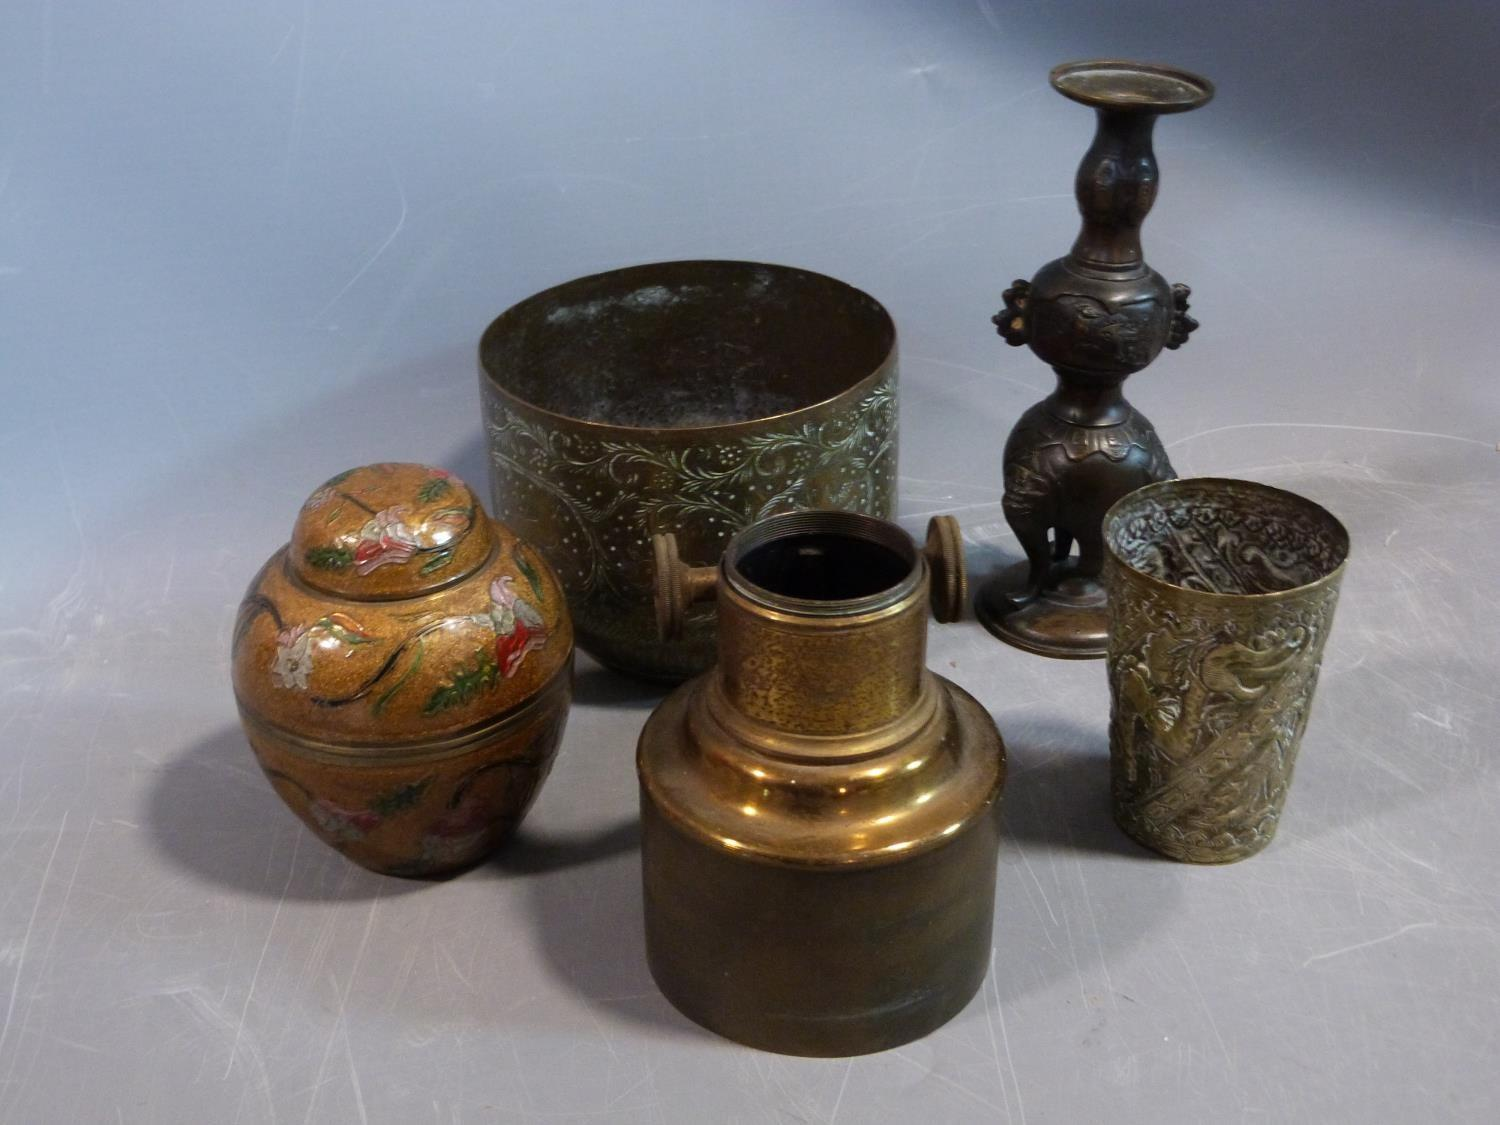 A collection of metalwork items. Including an antique adjustable magnifyer, a Chinese brass repousse